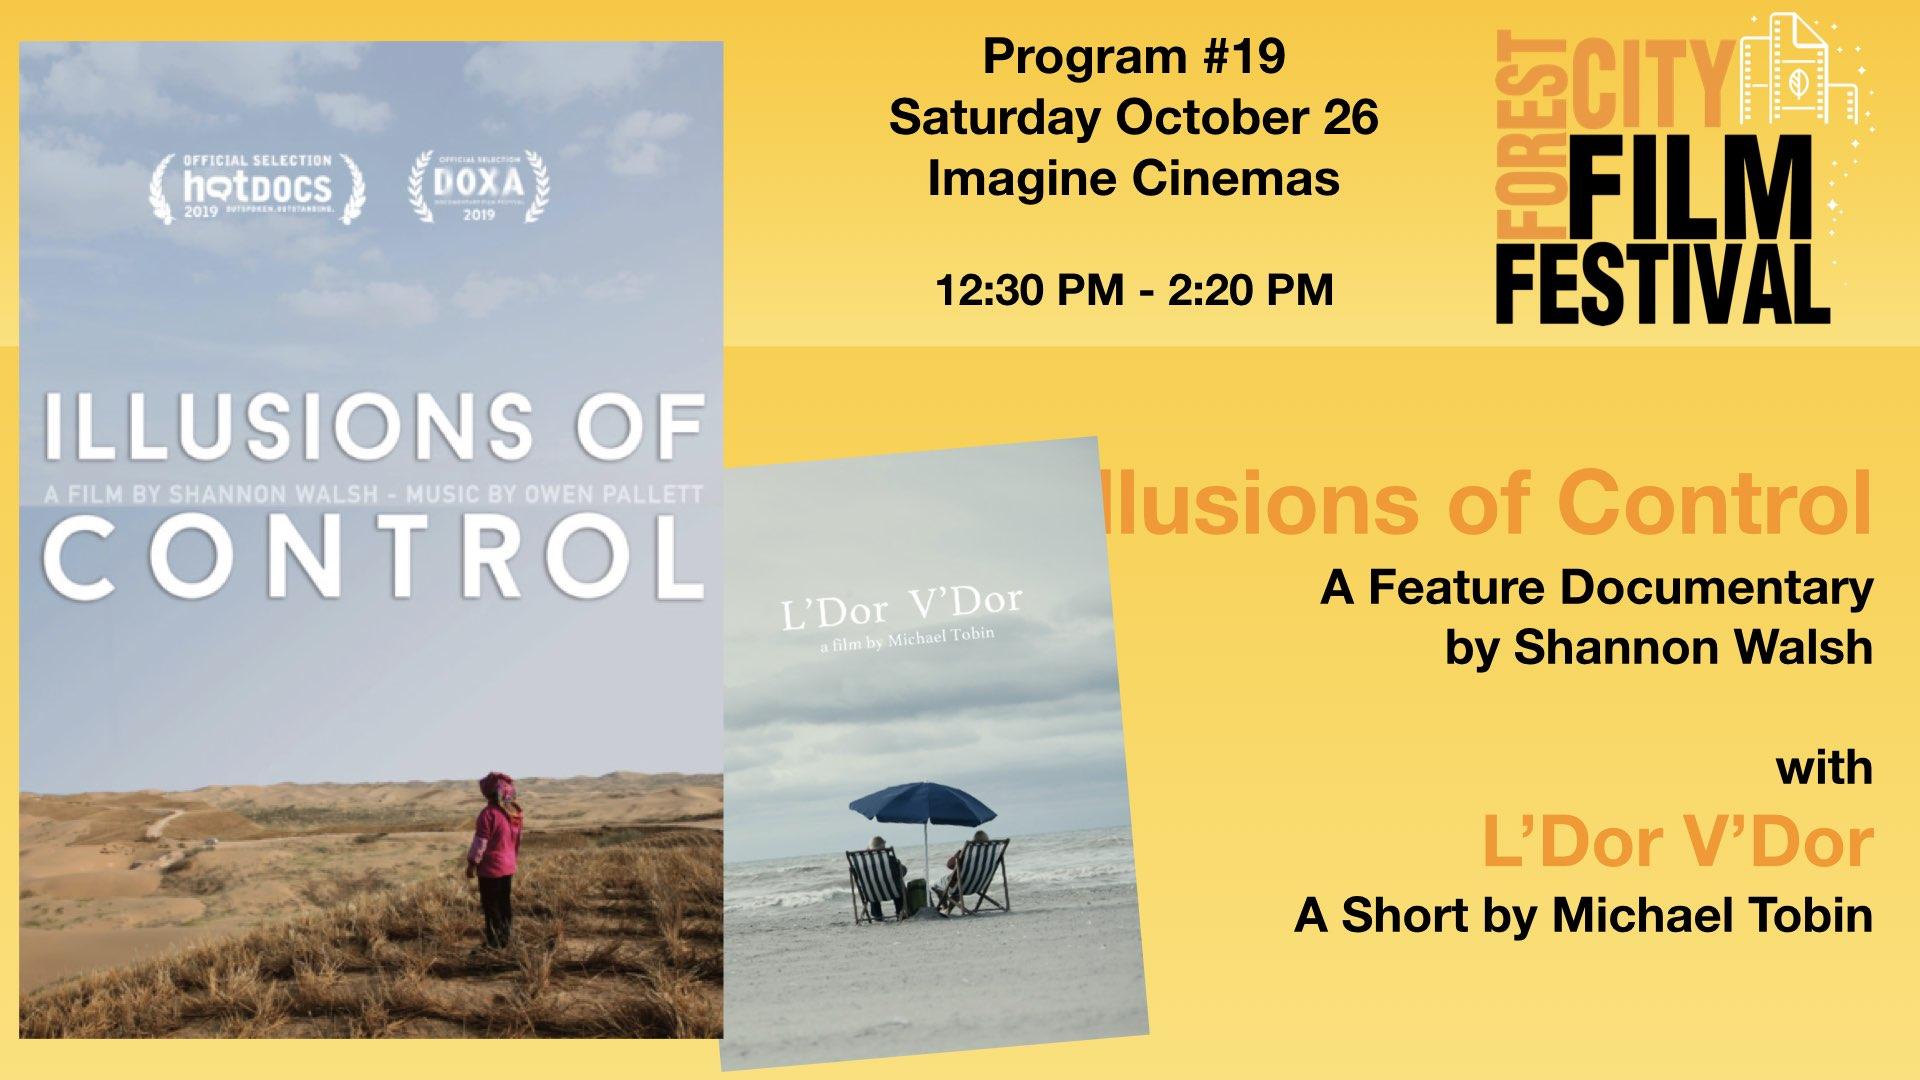 FCFF 2019 - Saturday Early Afternoon Imagine Program #19 - Illusions of Control & L'Dor V'Dor